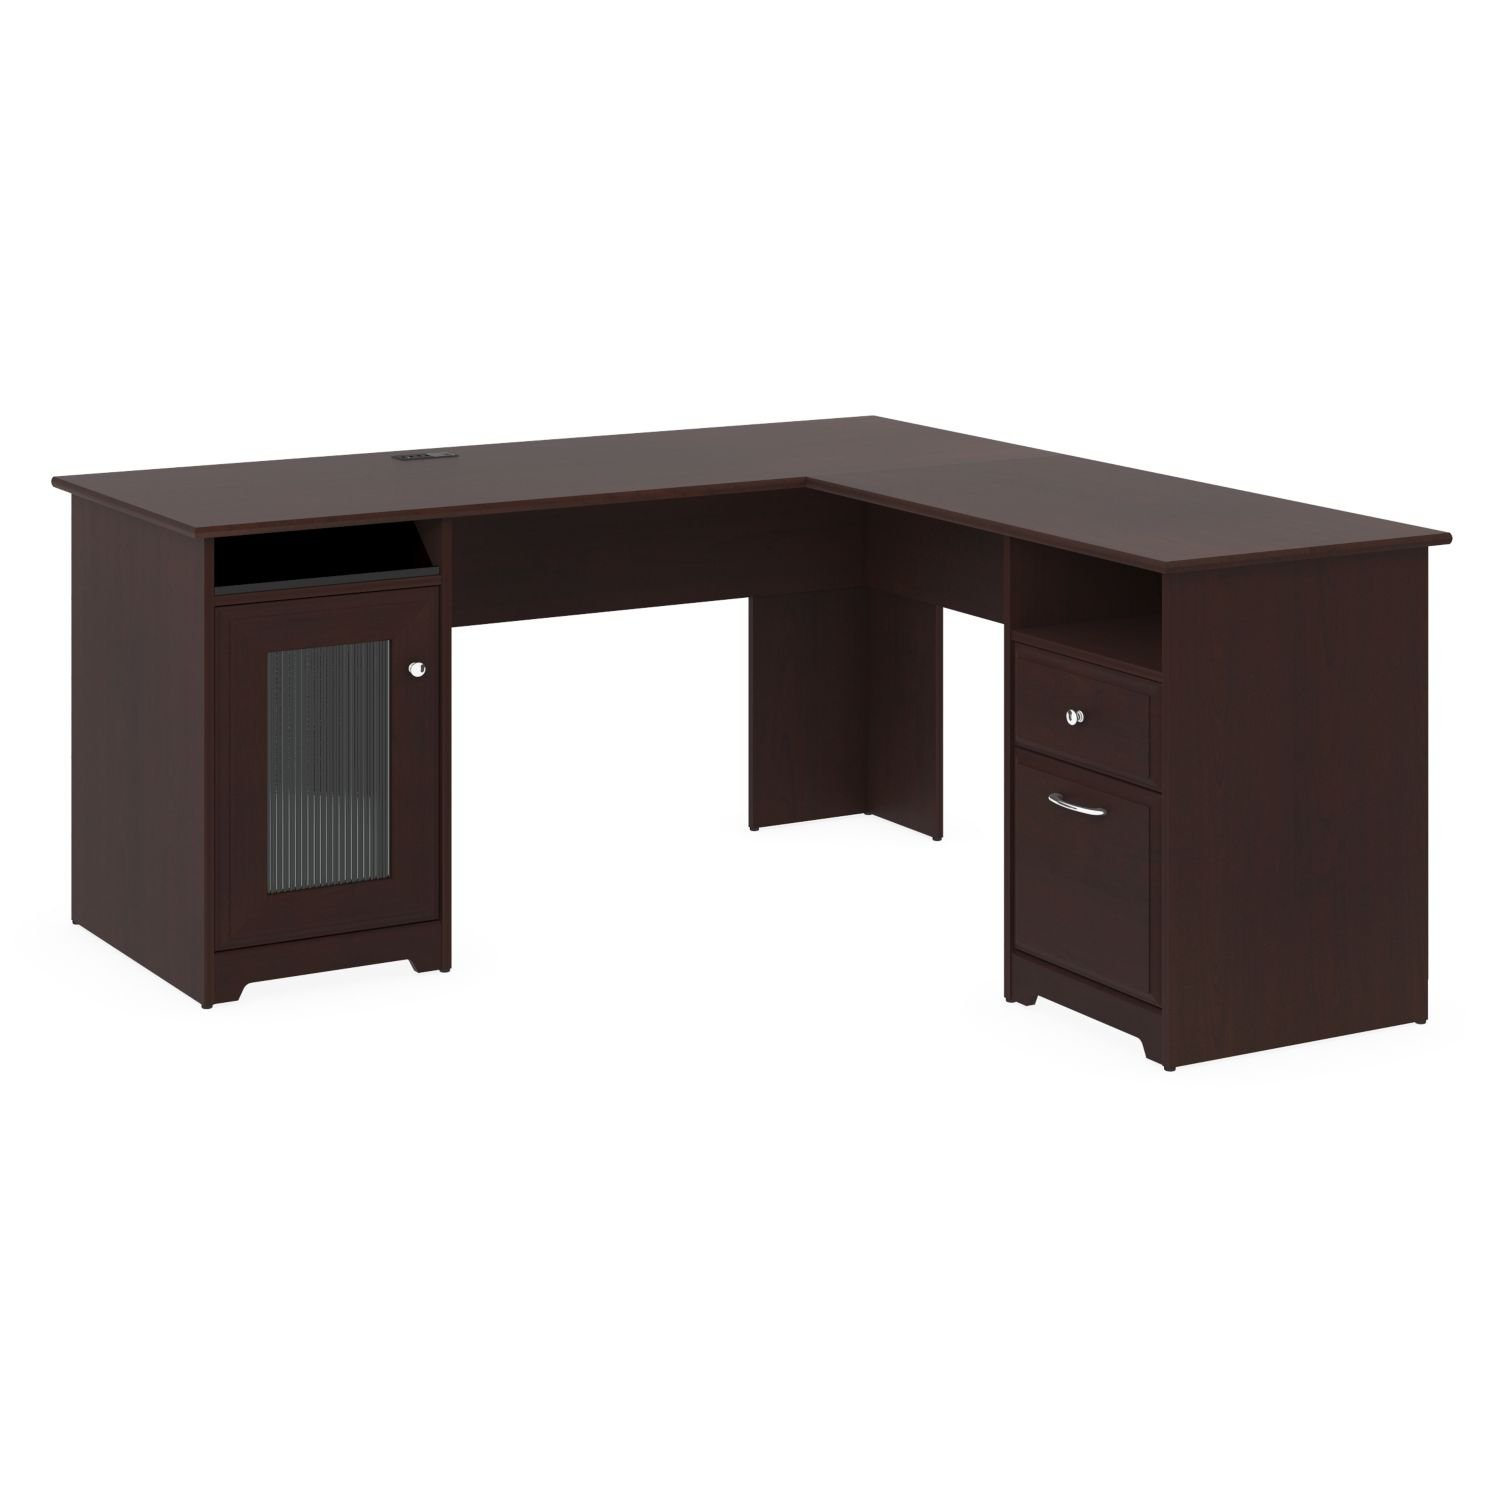 Office Computer Desk Executive Wood Corner Home Cherry Oak Furniture